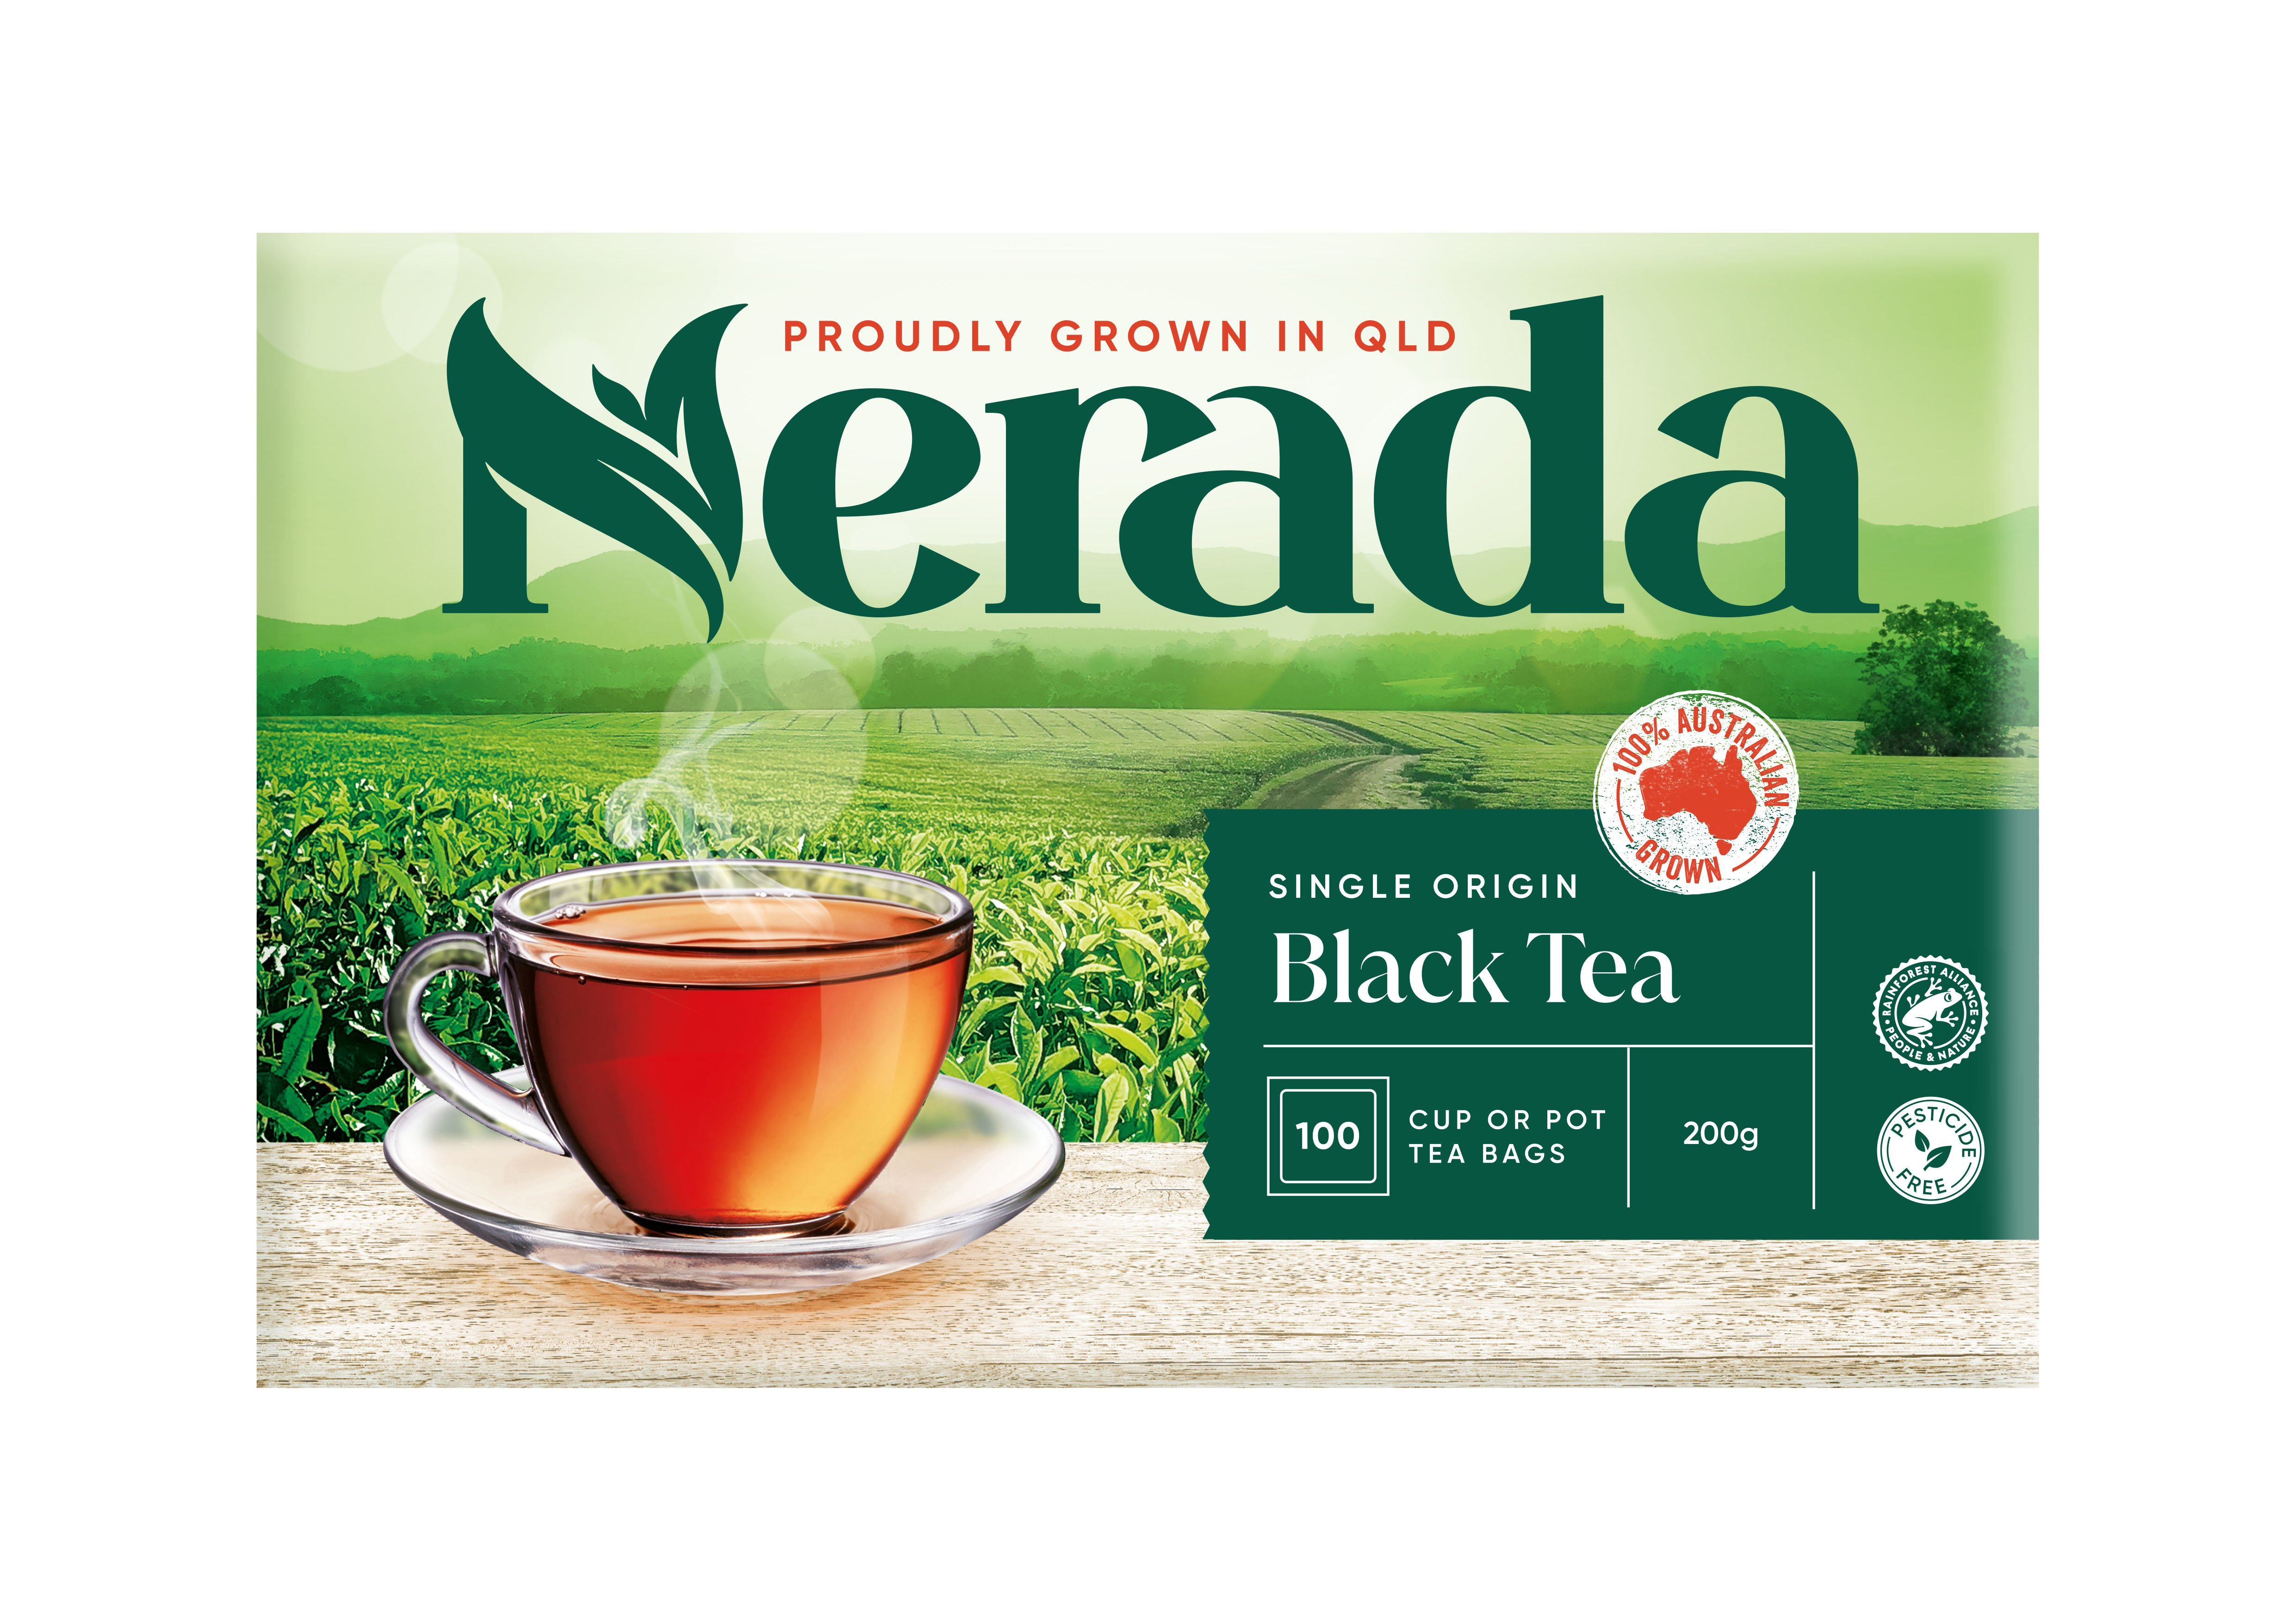 Nerada Cup or Pot 100 Teabags 12x200g